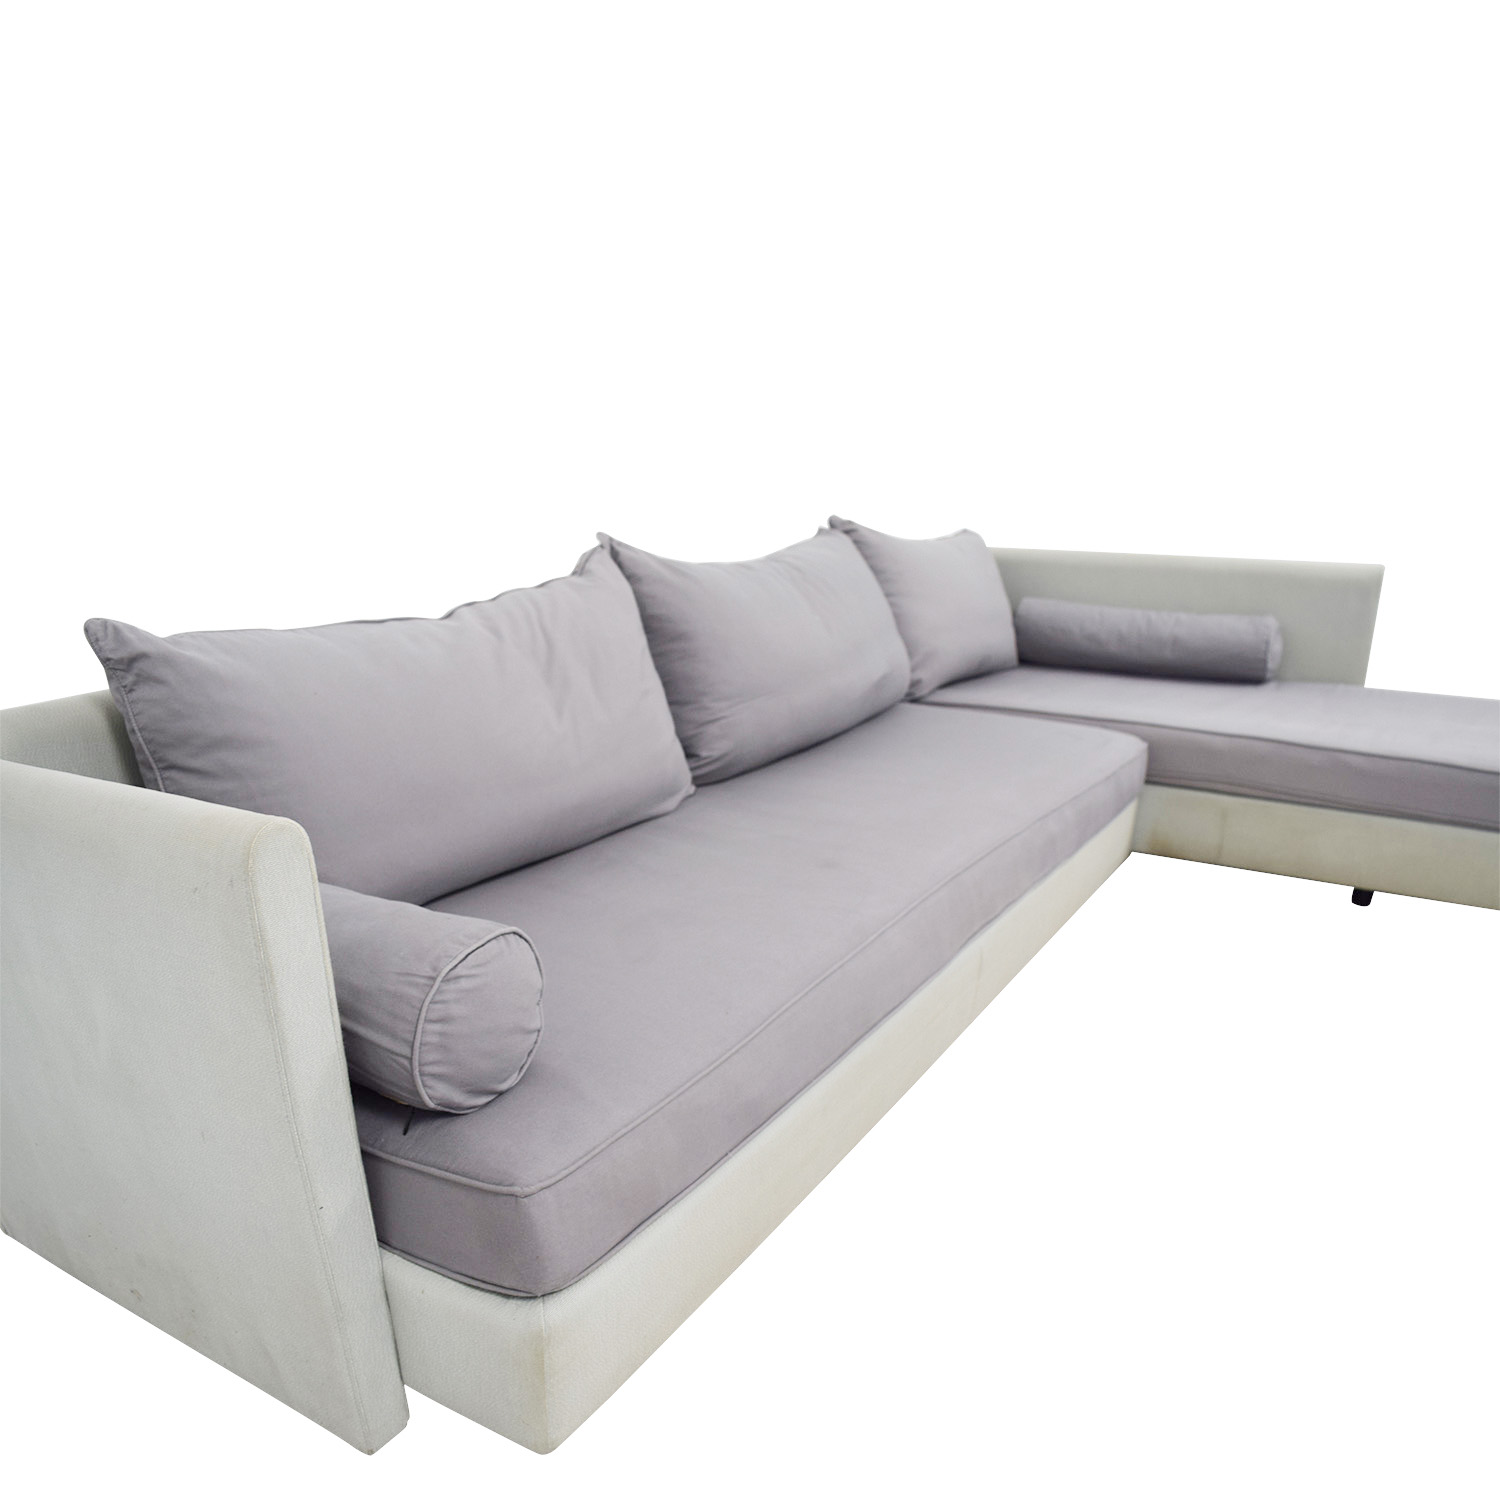 ligne roset sofa second hand www ebay com bed 90 off nomad beige chaise